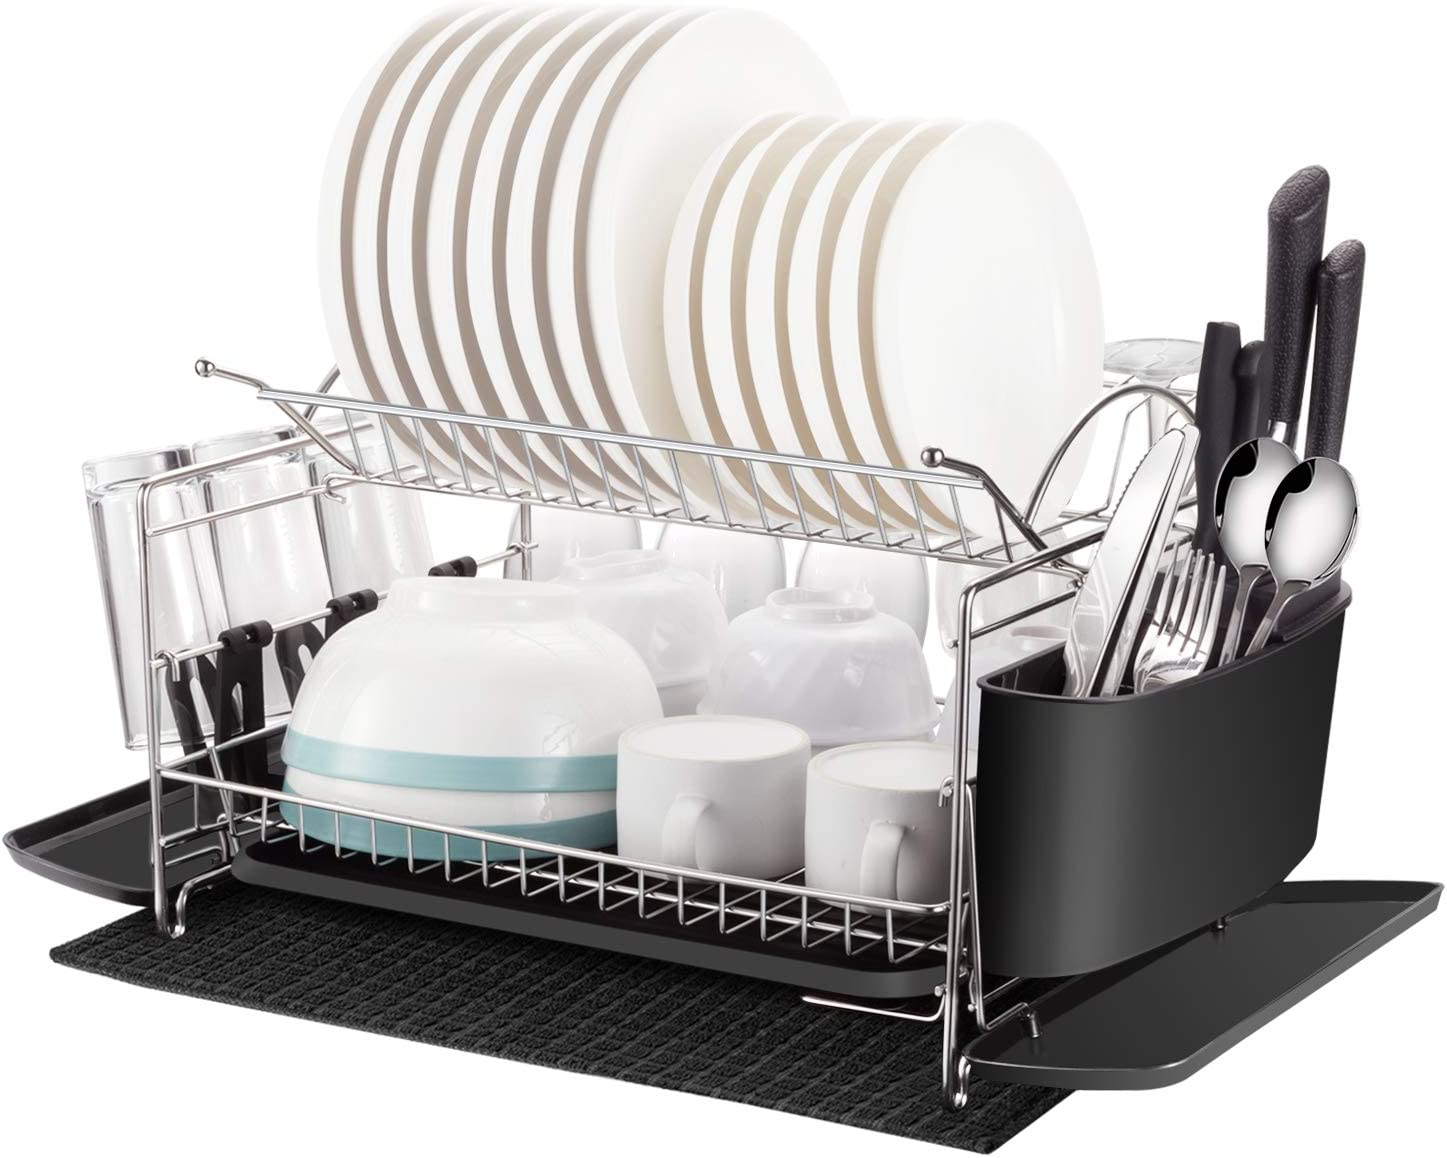 Kitchen Dish Drying Rack Oyydecor 2 Tier 304 Stainless Steel Large Dish Drying Rack With Drainboard Set Utensil Holder Dish Drainer Bonus Microfiber Mat And Dish Racks For Counter